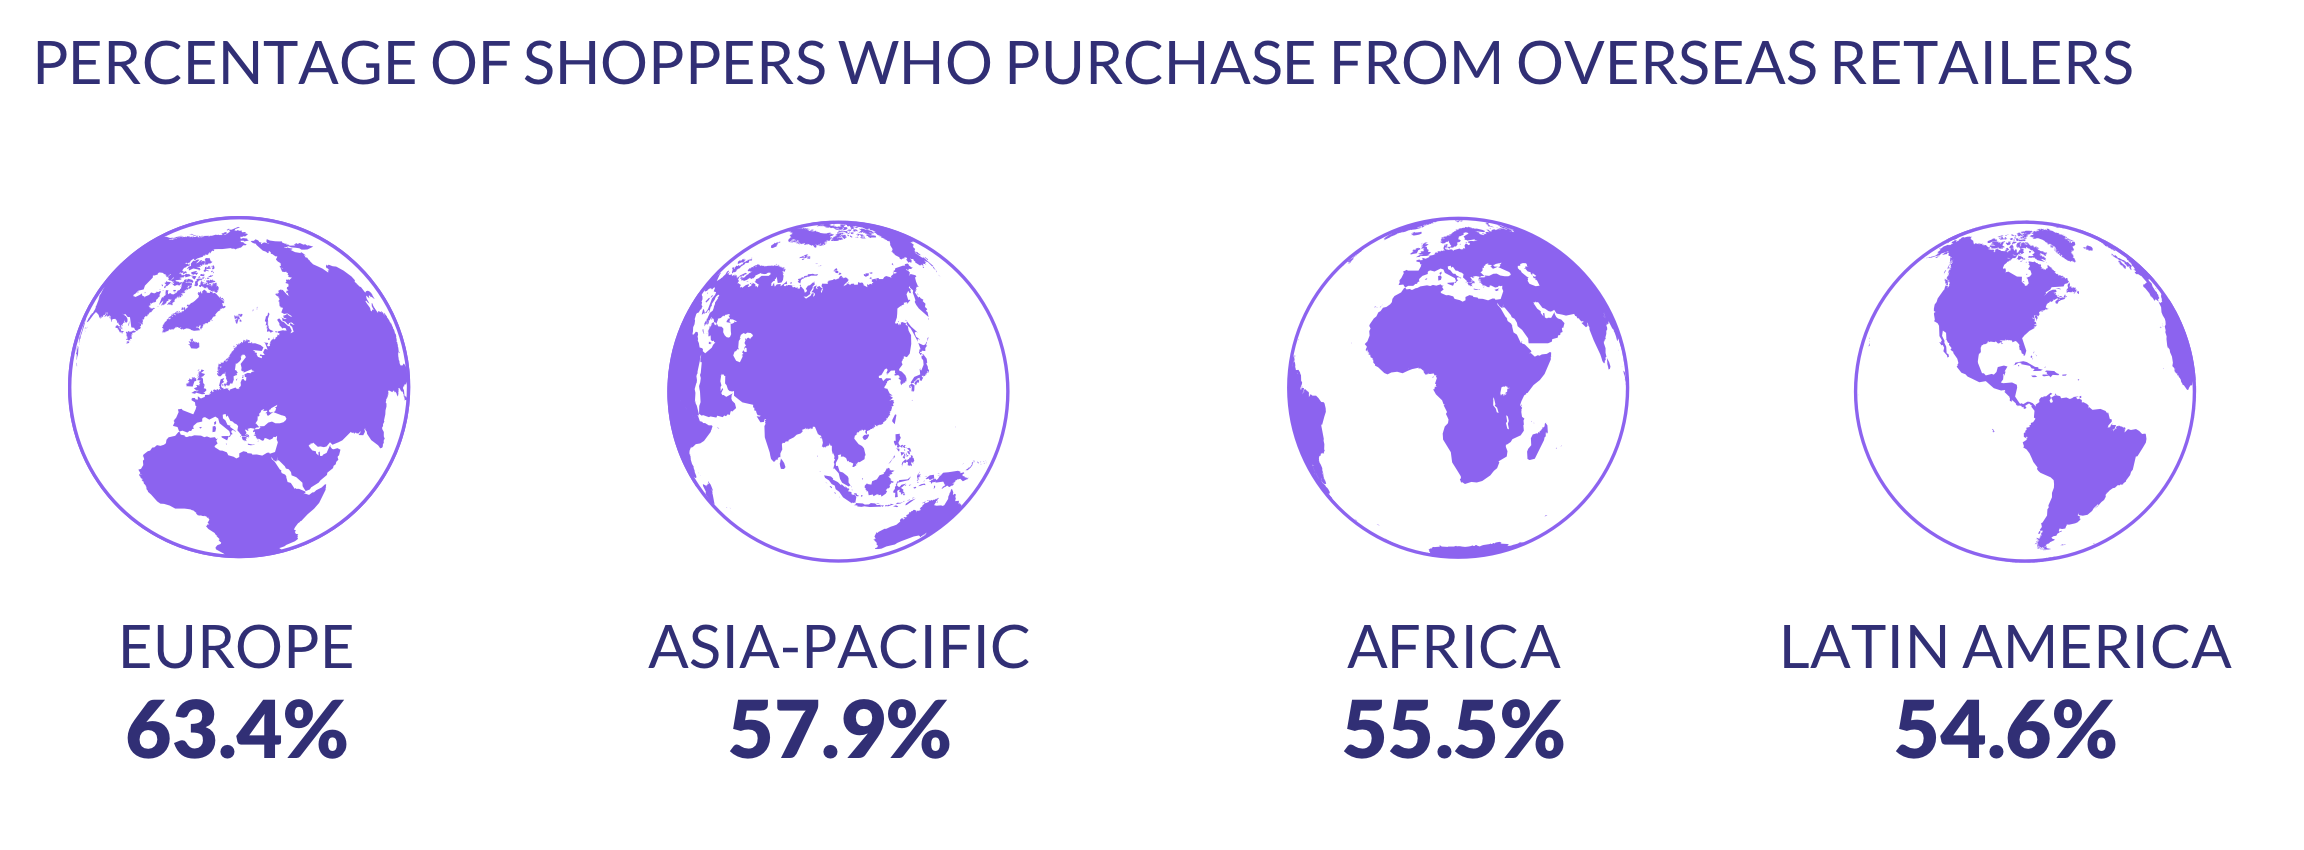 regional shoppers who purchase from overseas